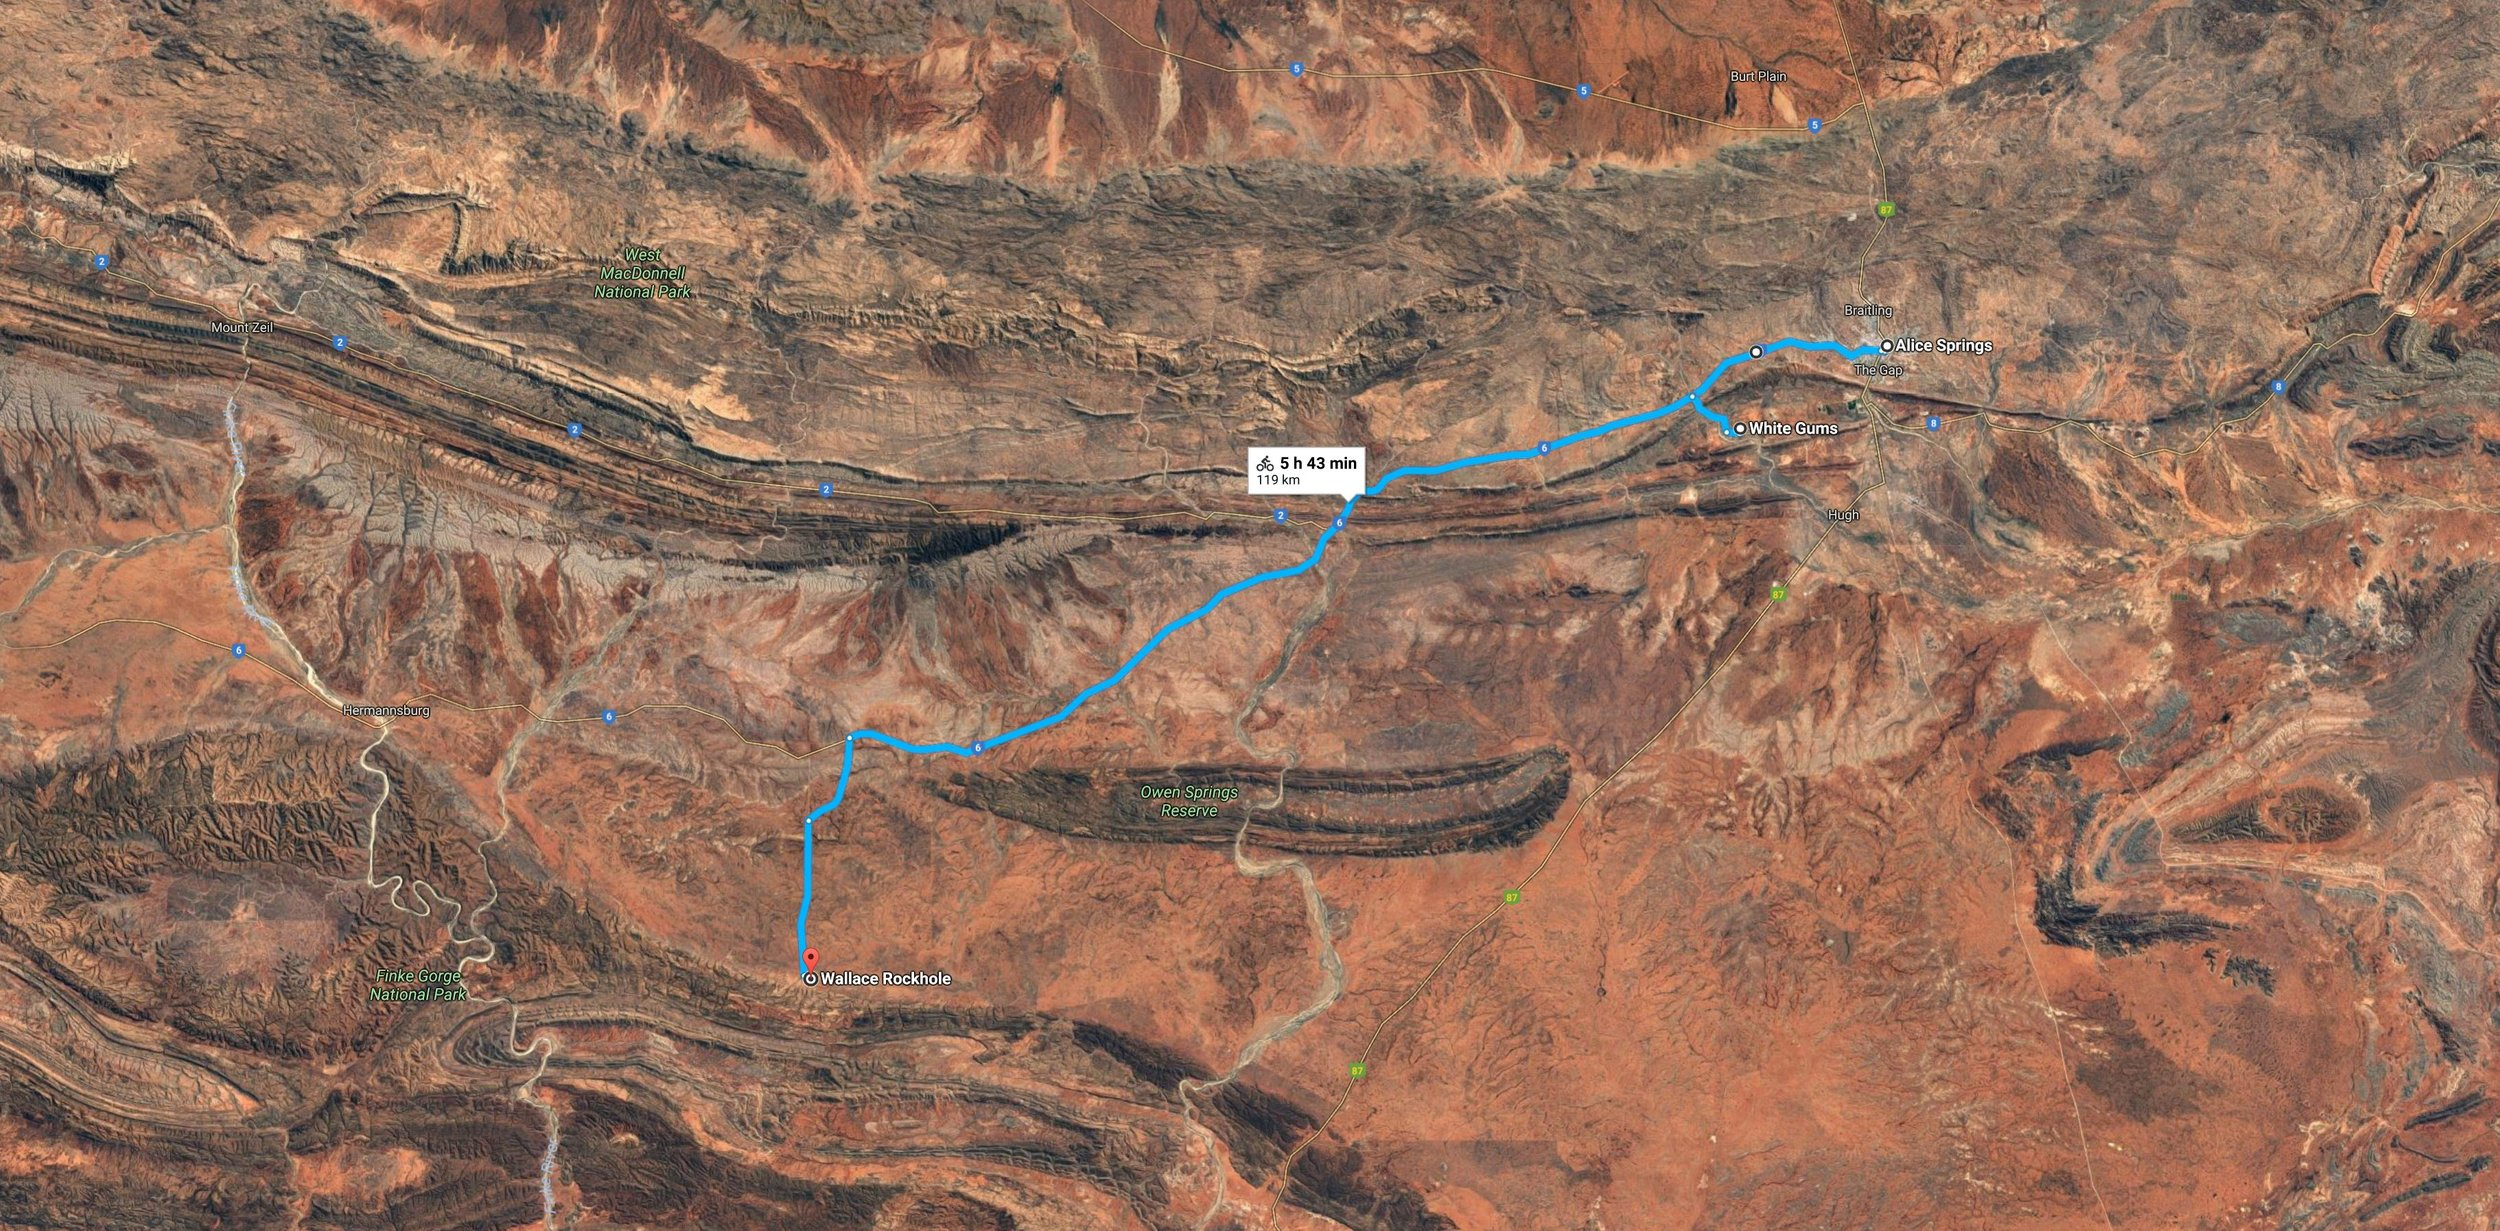 The 120km or so easy trek from Alice to WRH. Check out that bloody geology from the sky....! The range at the top of the image is the MacDonell and at WRH red marker is upon the base of the James Range.